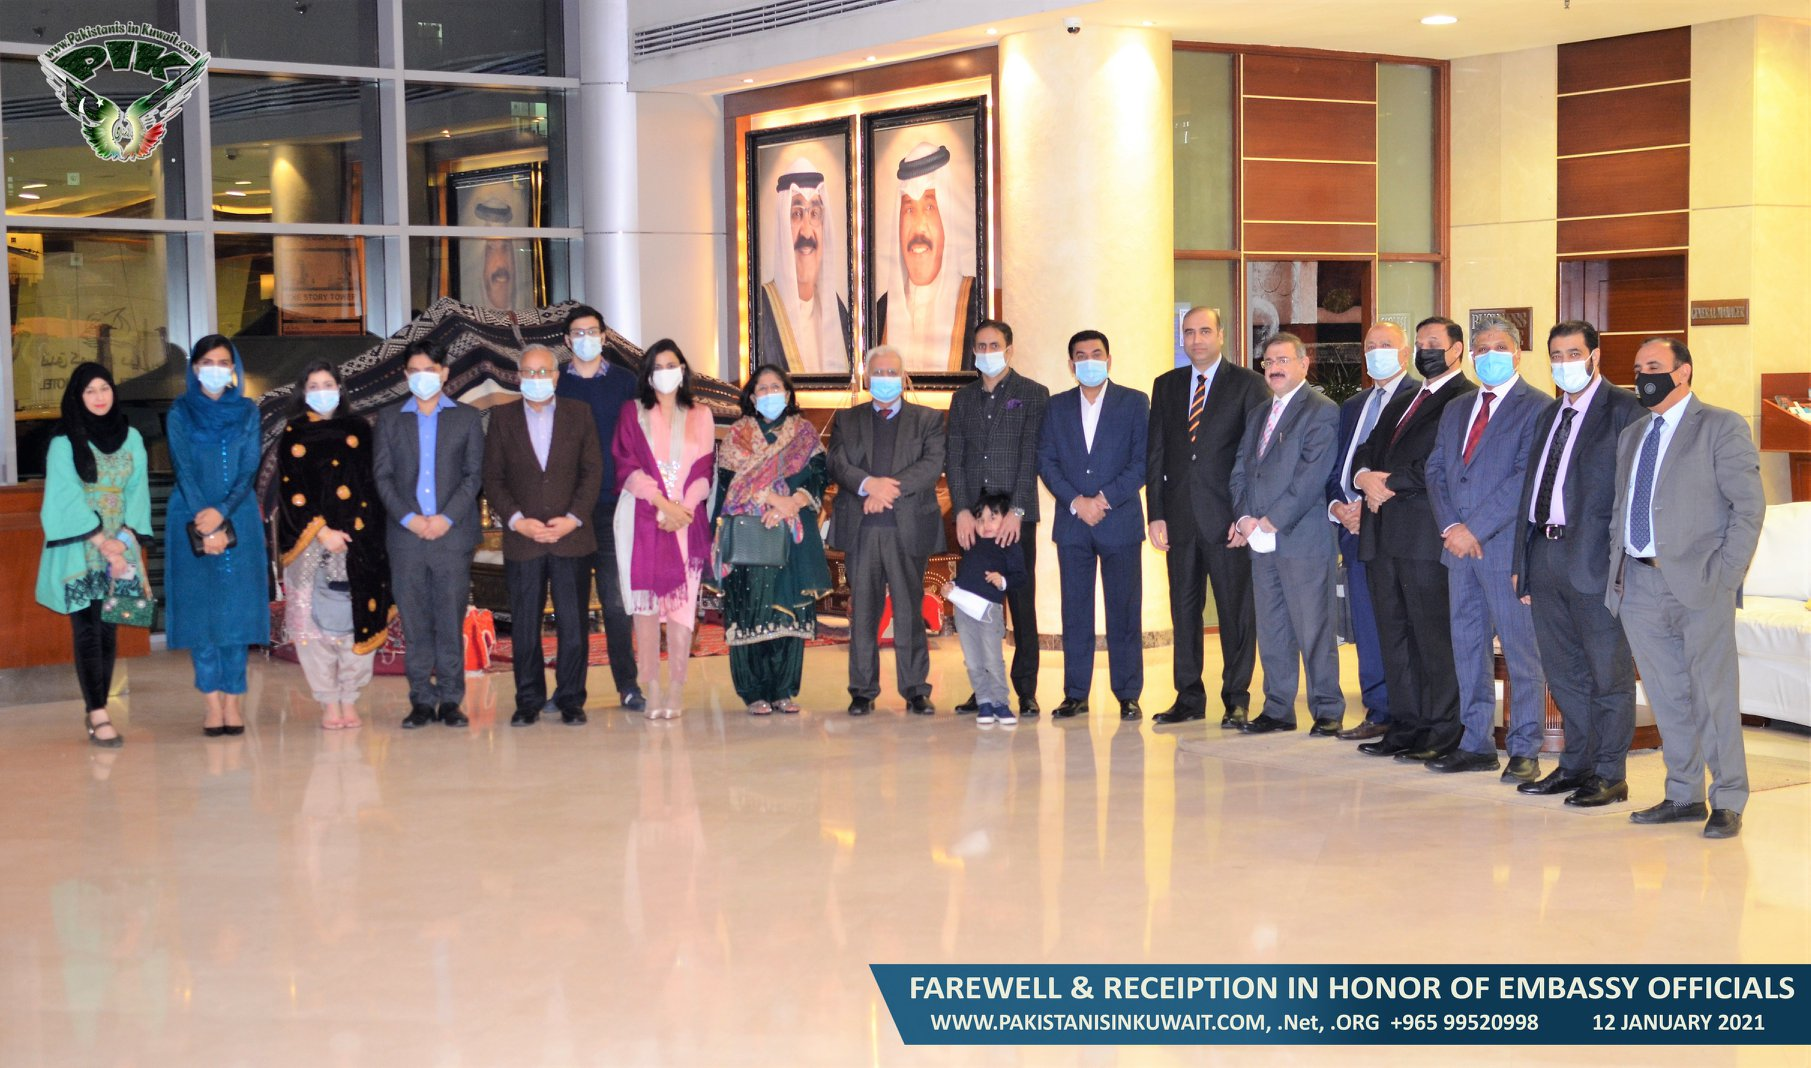 FAREWELL & RECEIPTION IN HONOR OF EMBASSY OFFICIALS: 12-Jan-2021